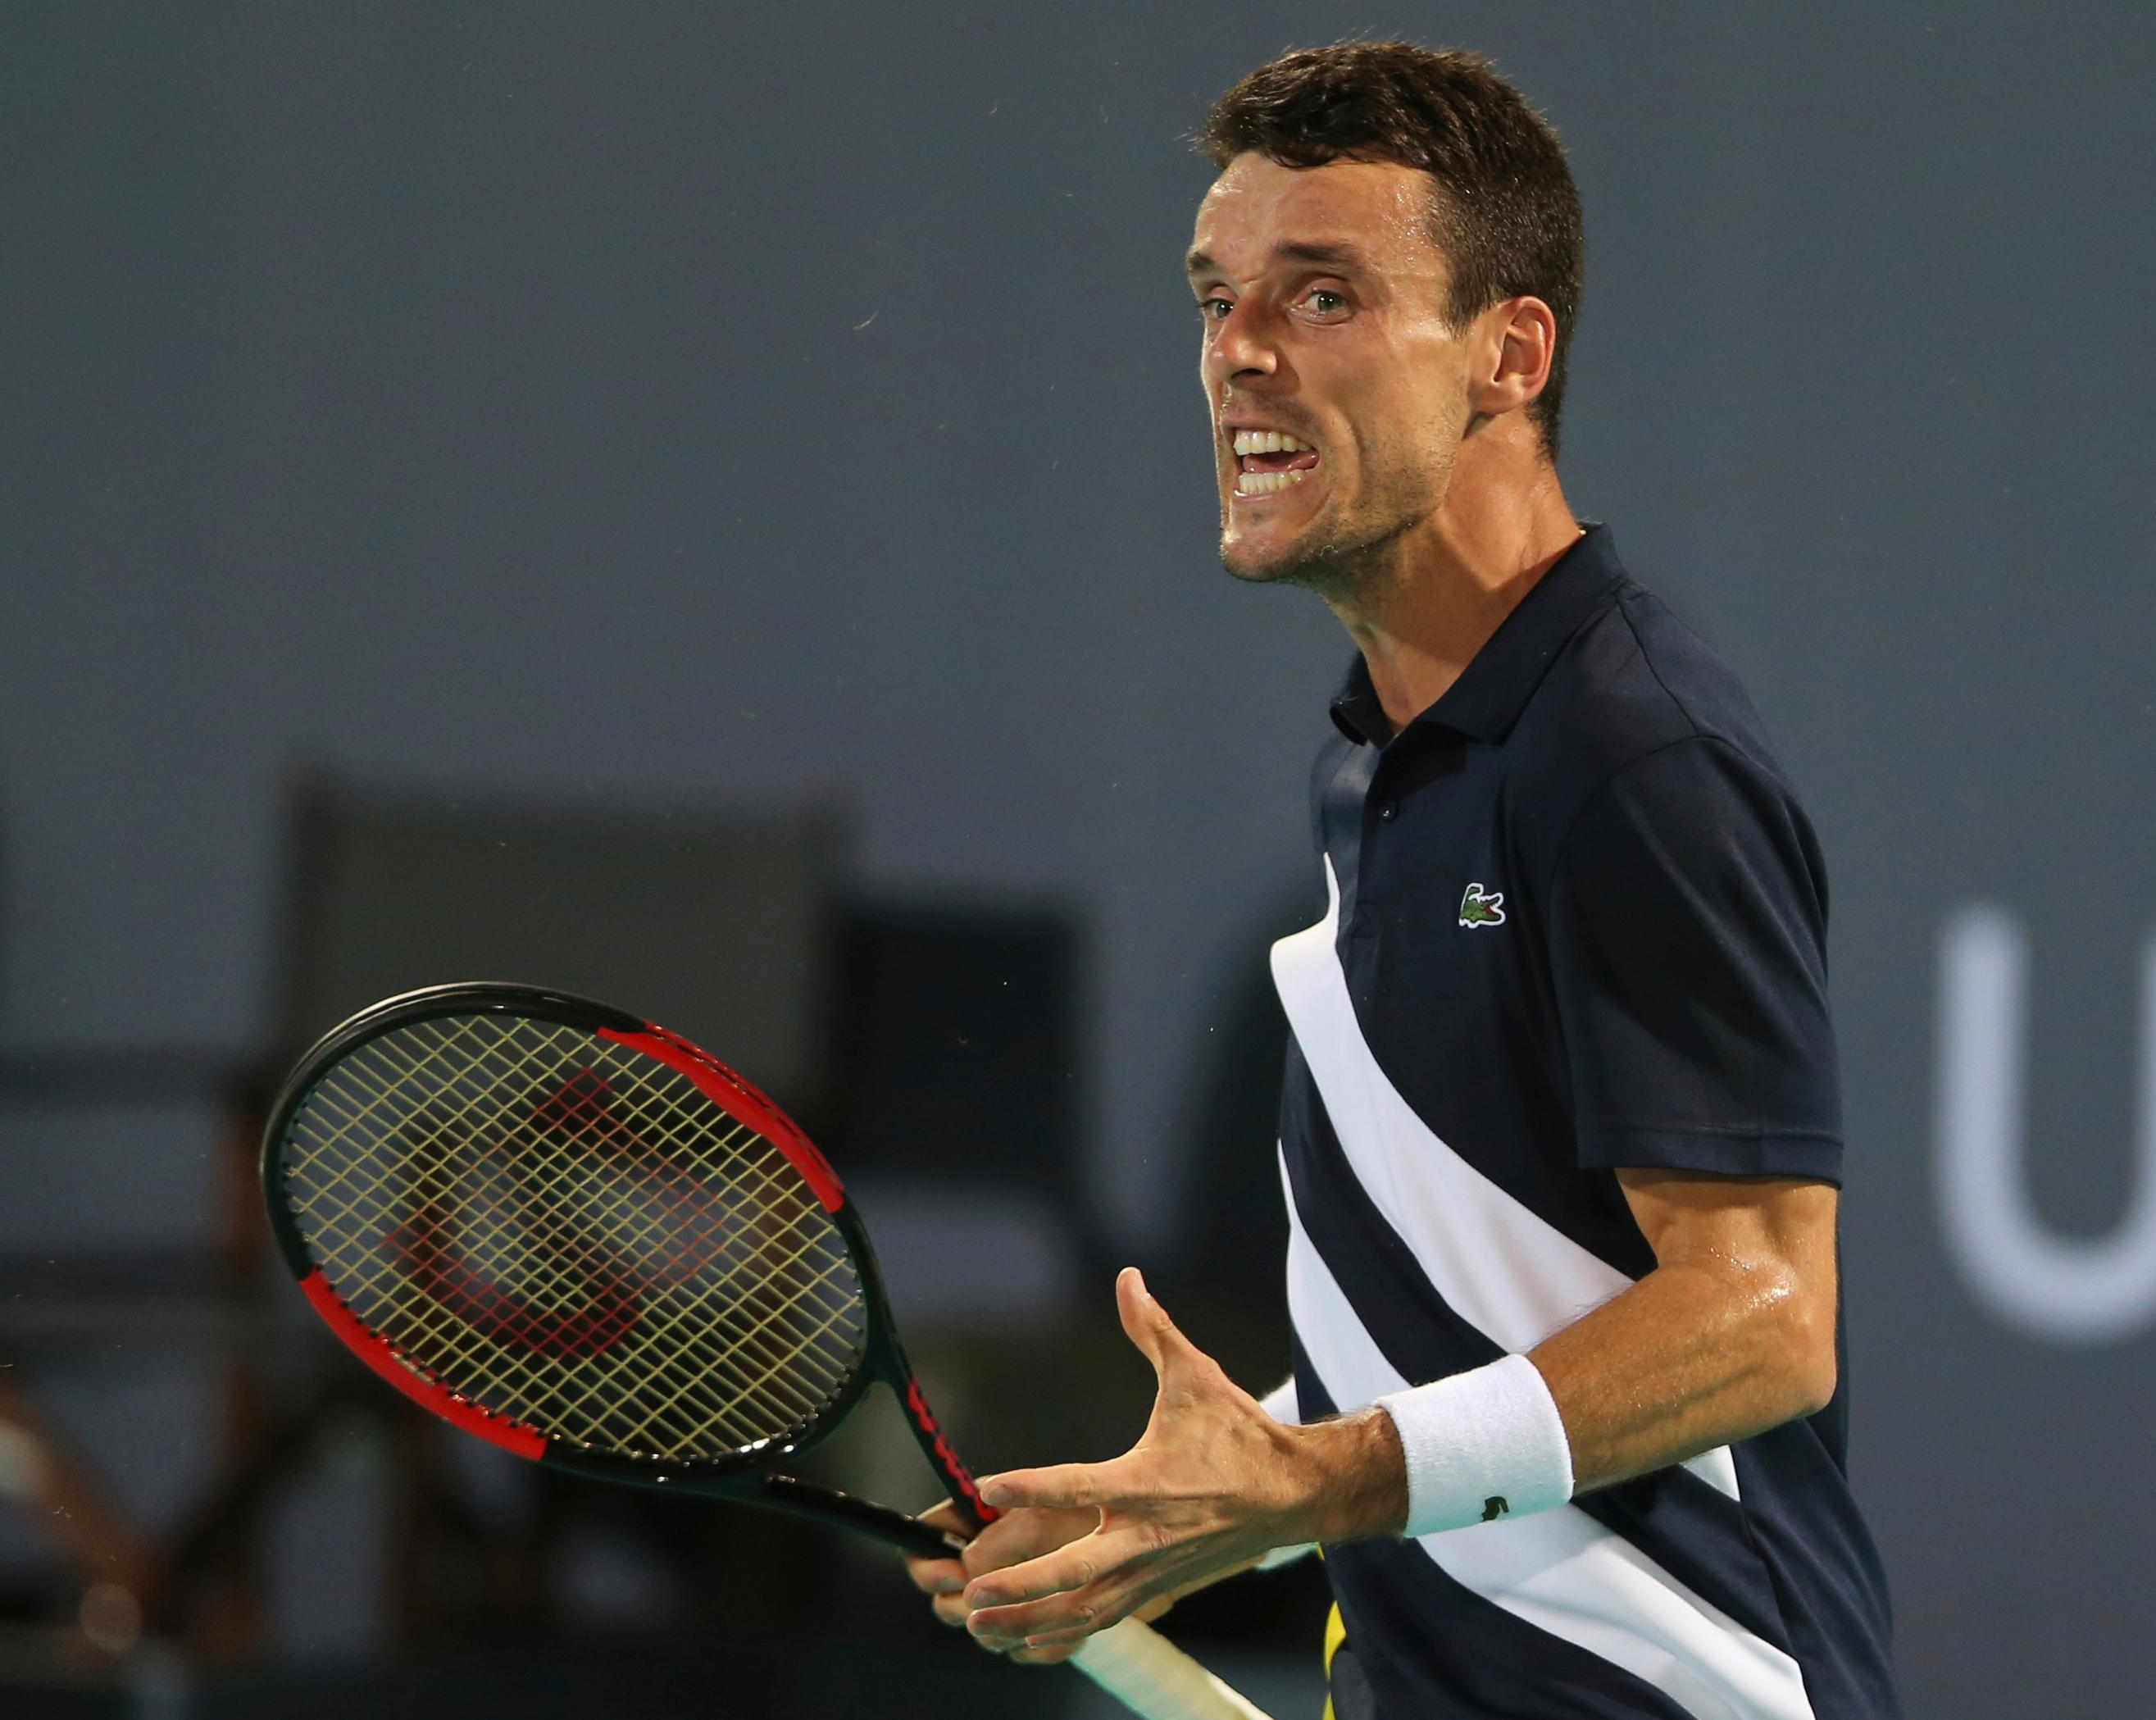 Spain's Roberto Bautista Agut reacts at the final match against South Africa's Kevin Anderson during the Mubadala World Tennis Championship in Abu Dhabi, United Arab Emirates, Saturday, Dec. 30, 2017. (AP Photo/Kamran Jebreili)